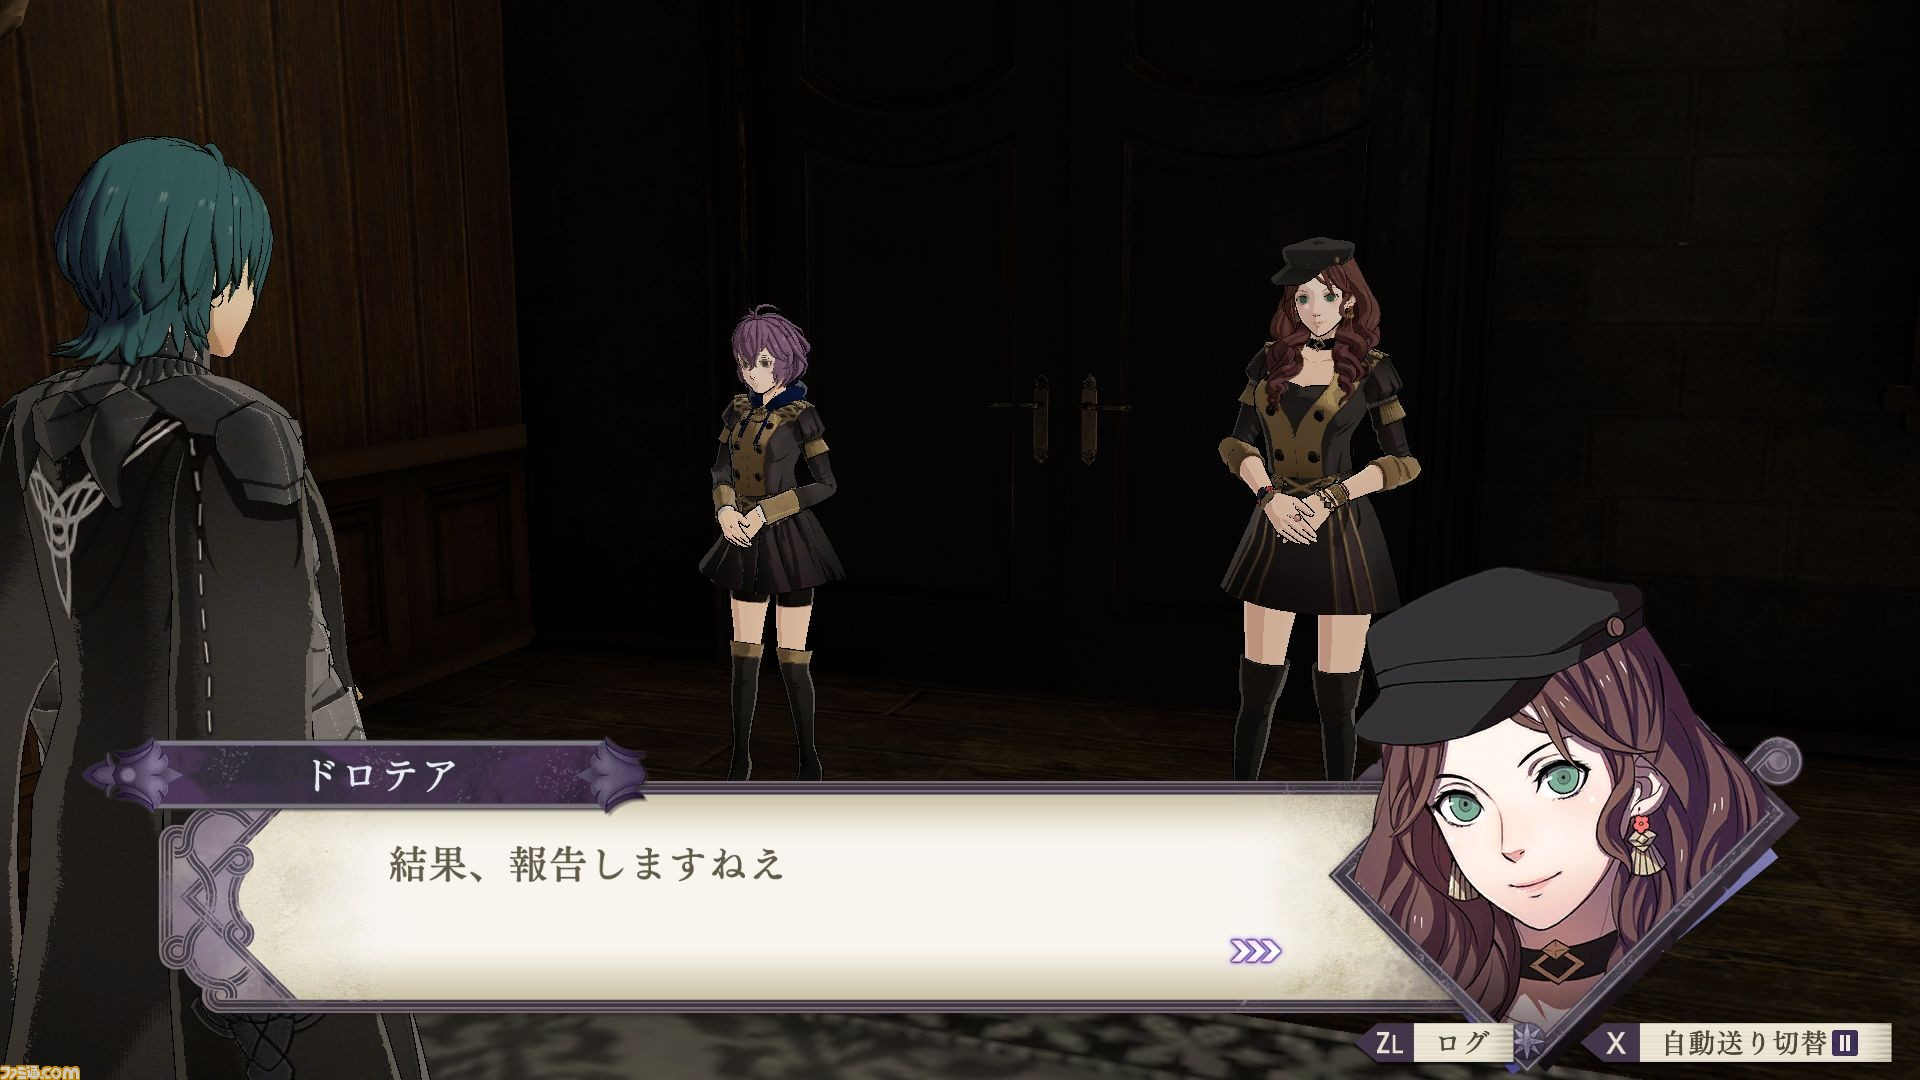 Tons of Fire Emblem: Three Houses details and screenshots